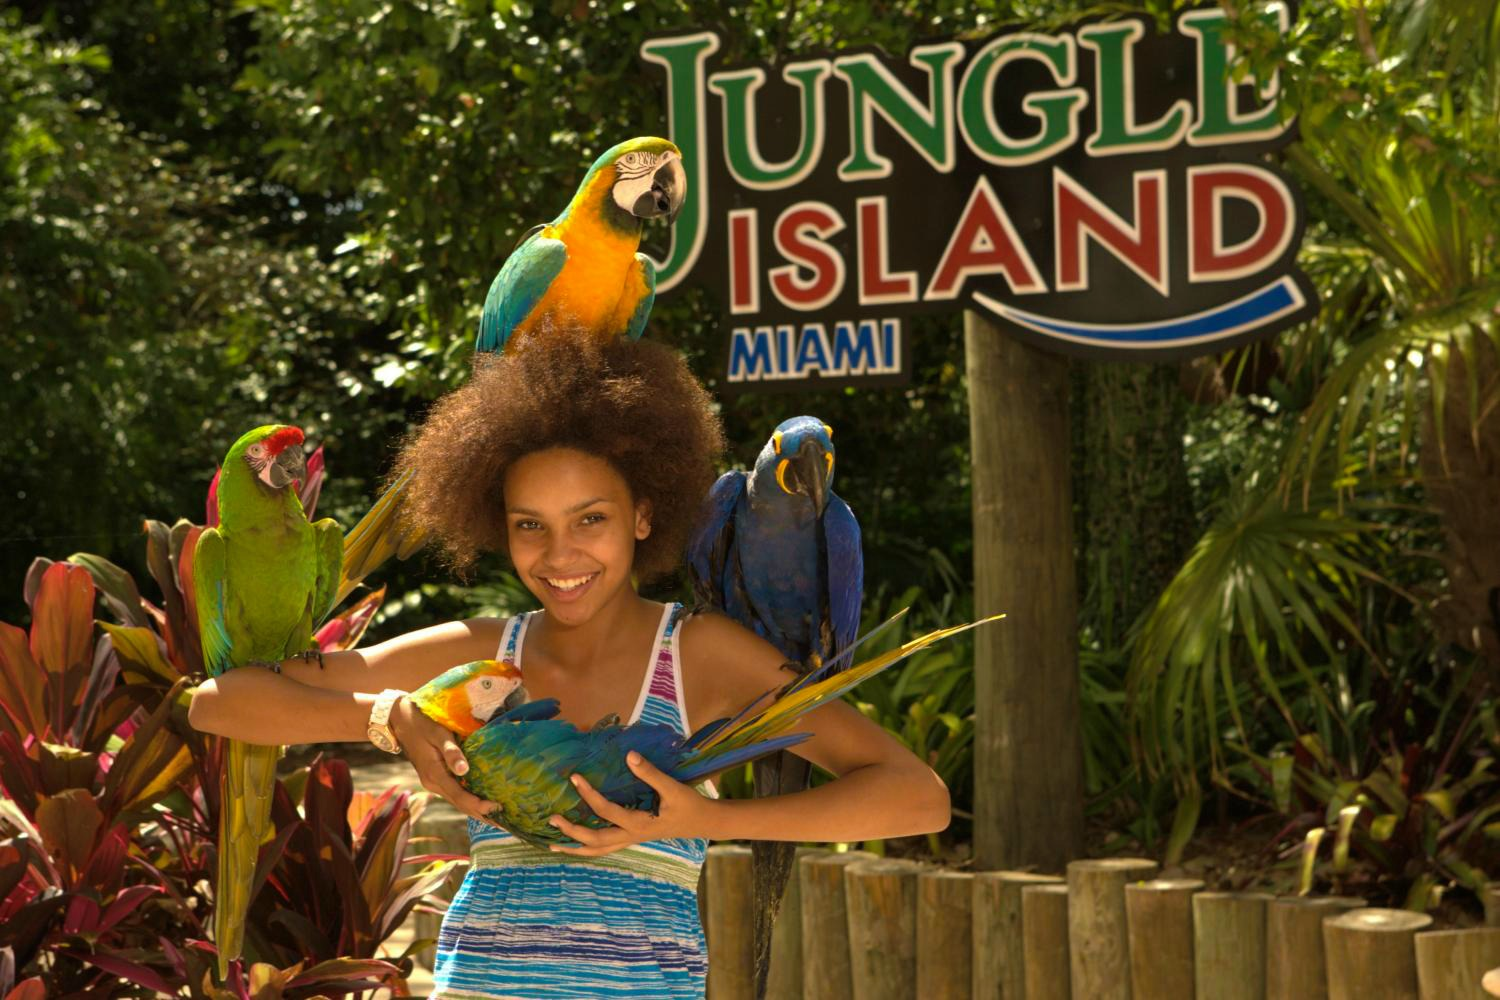 Jungle Island Miami: Interactive Exhibits, Fun Shows and Animals Galore! #travel